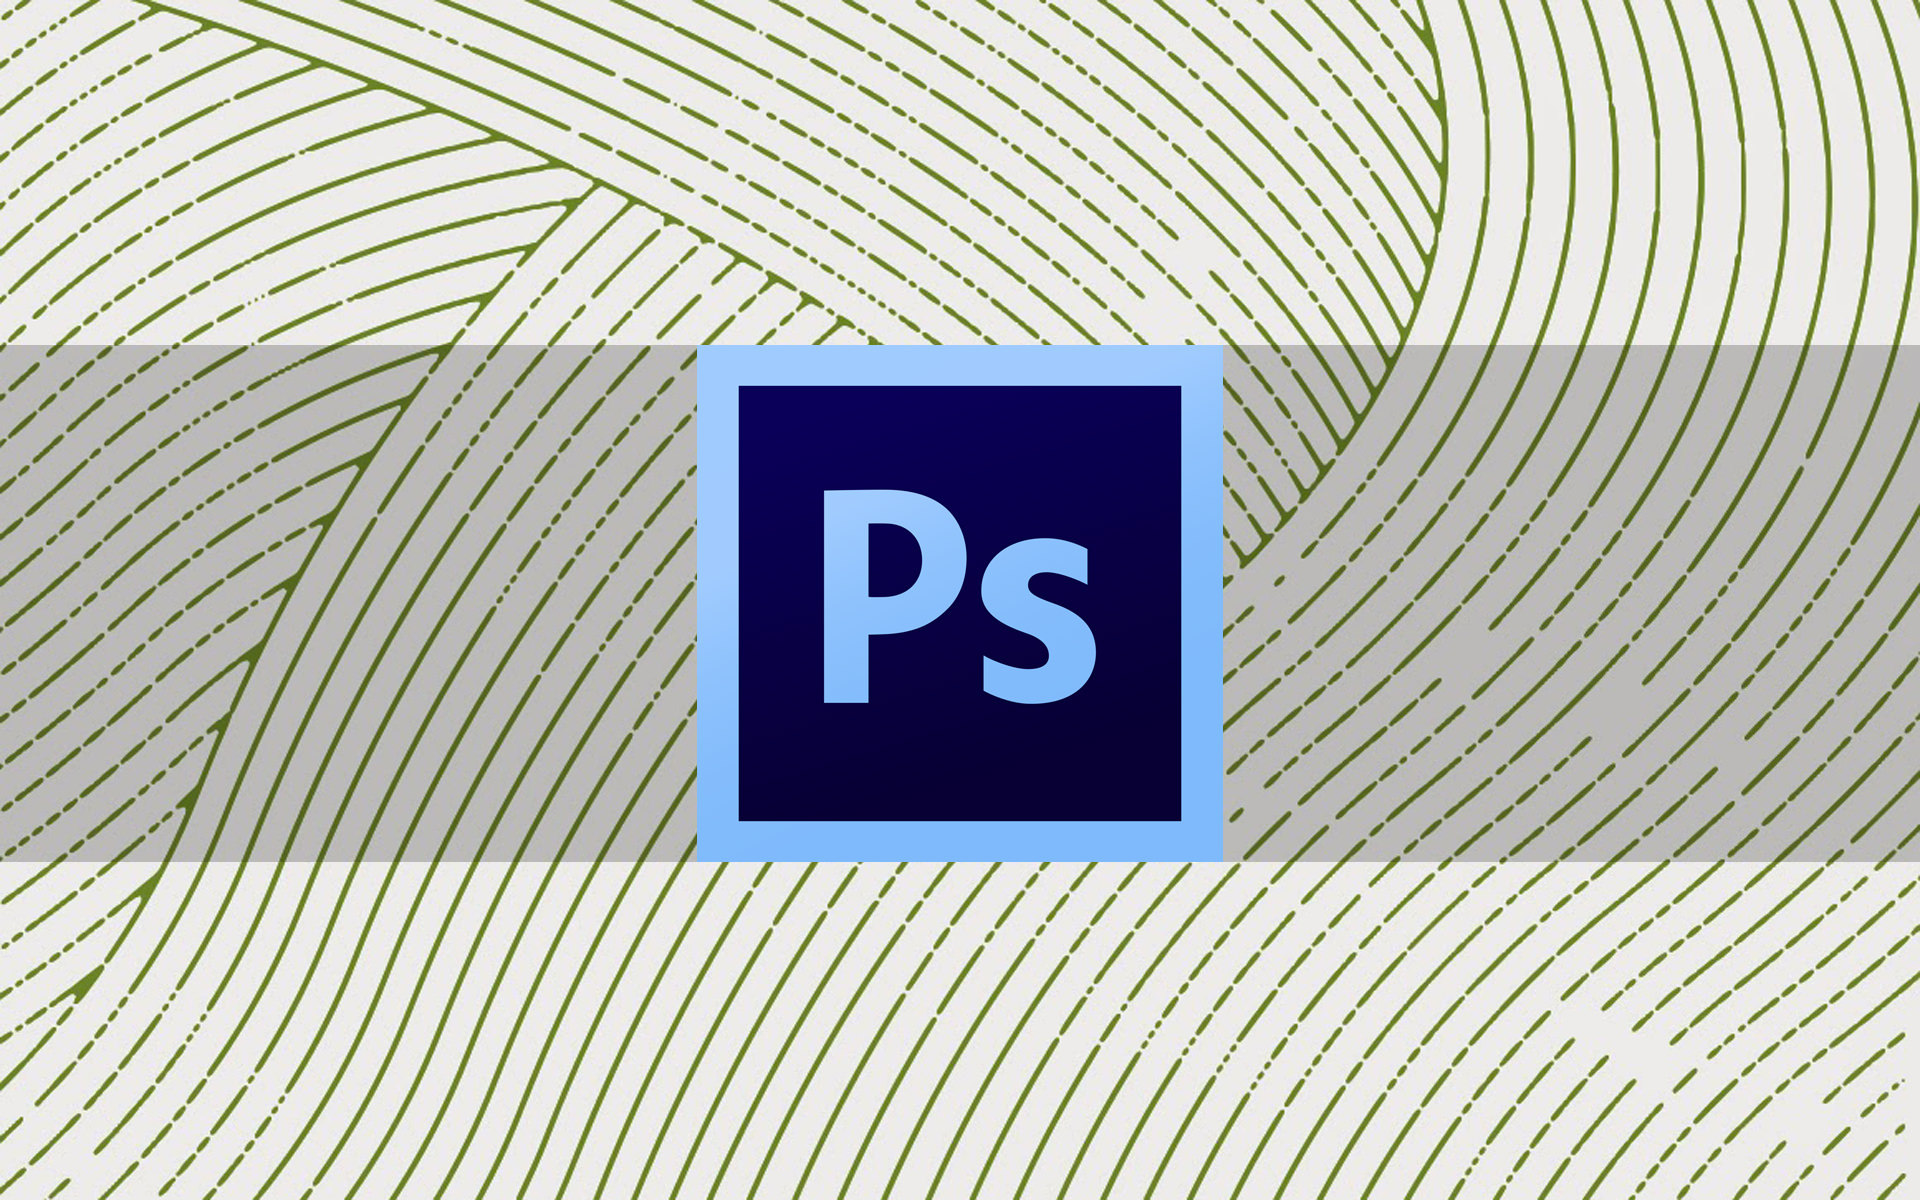 transformation tool in photoshop